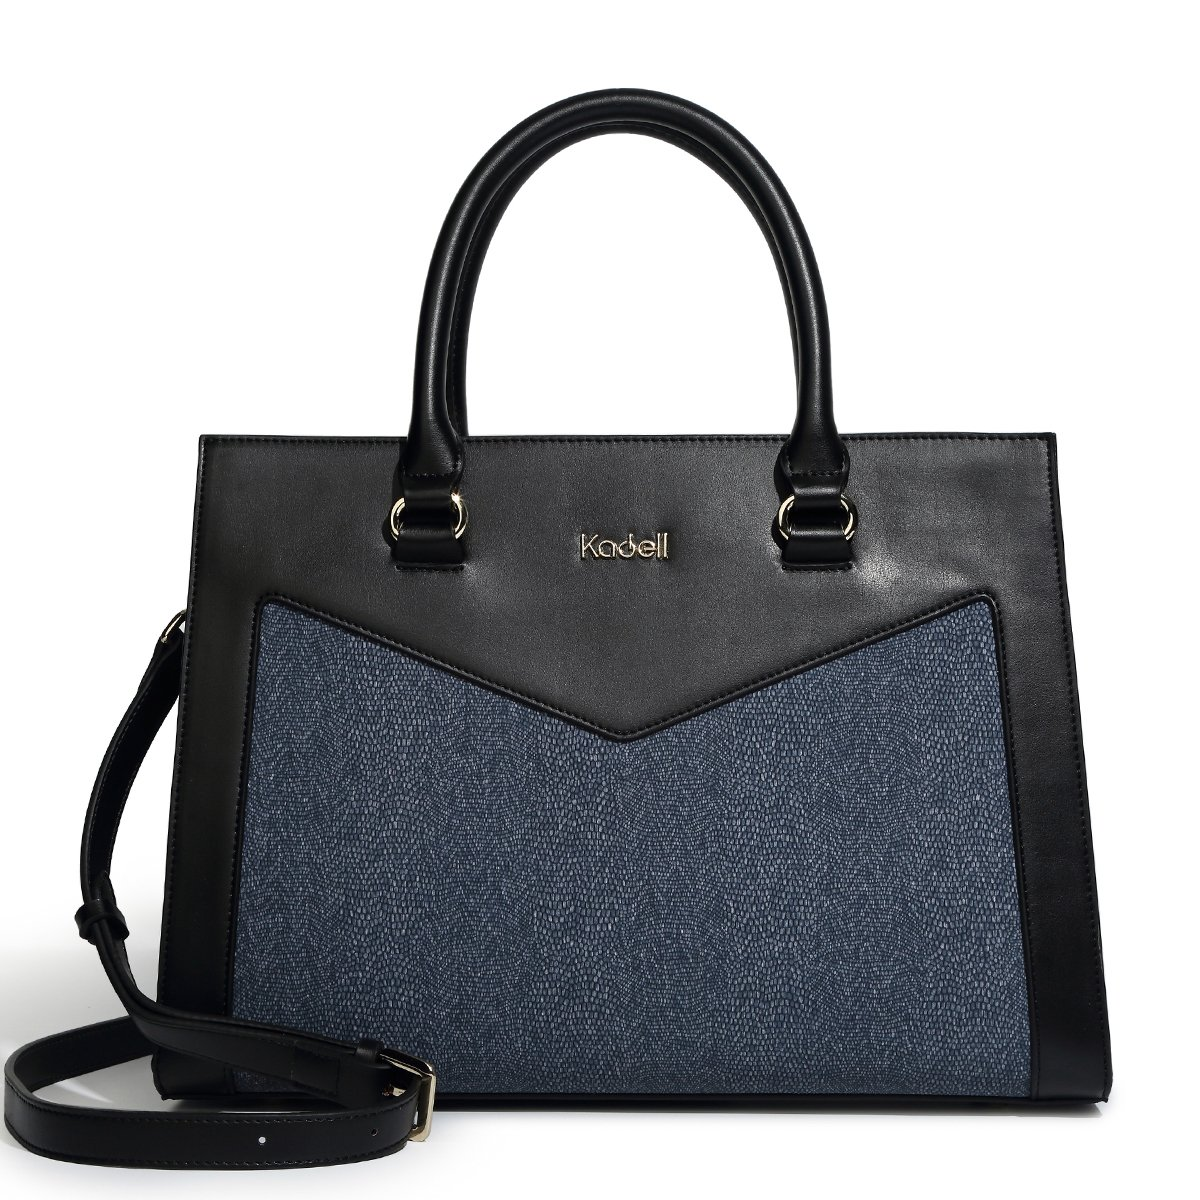 Kadell New Women Handbags PU Leather Shoulder Totes Purse Messenger Bags With Removable Strape Black